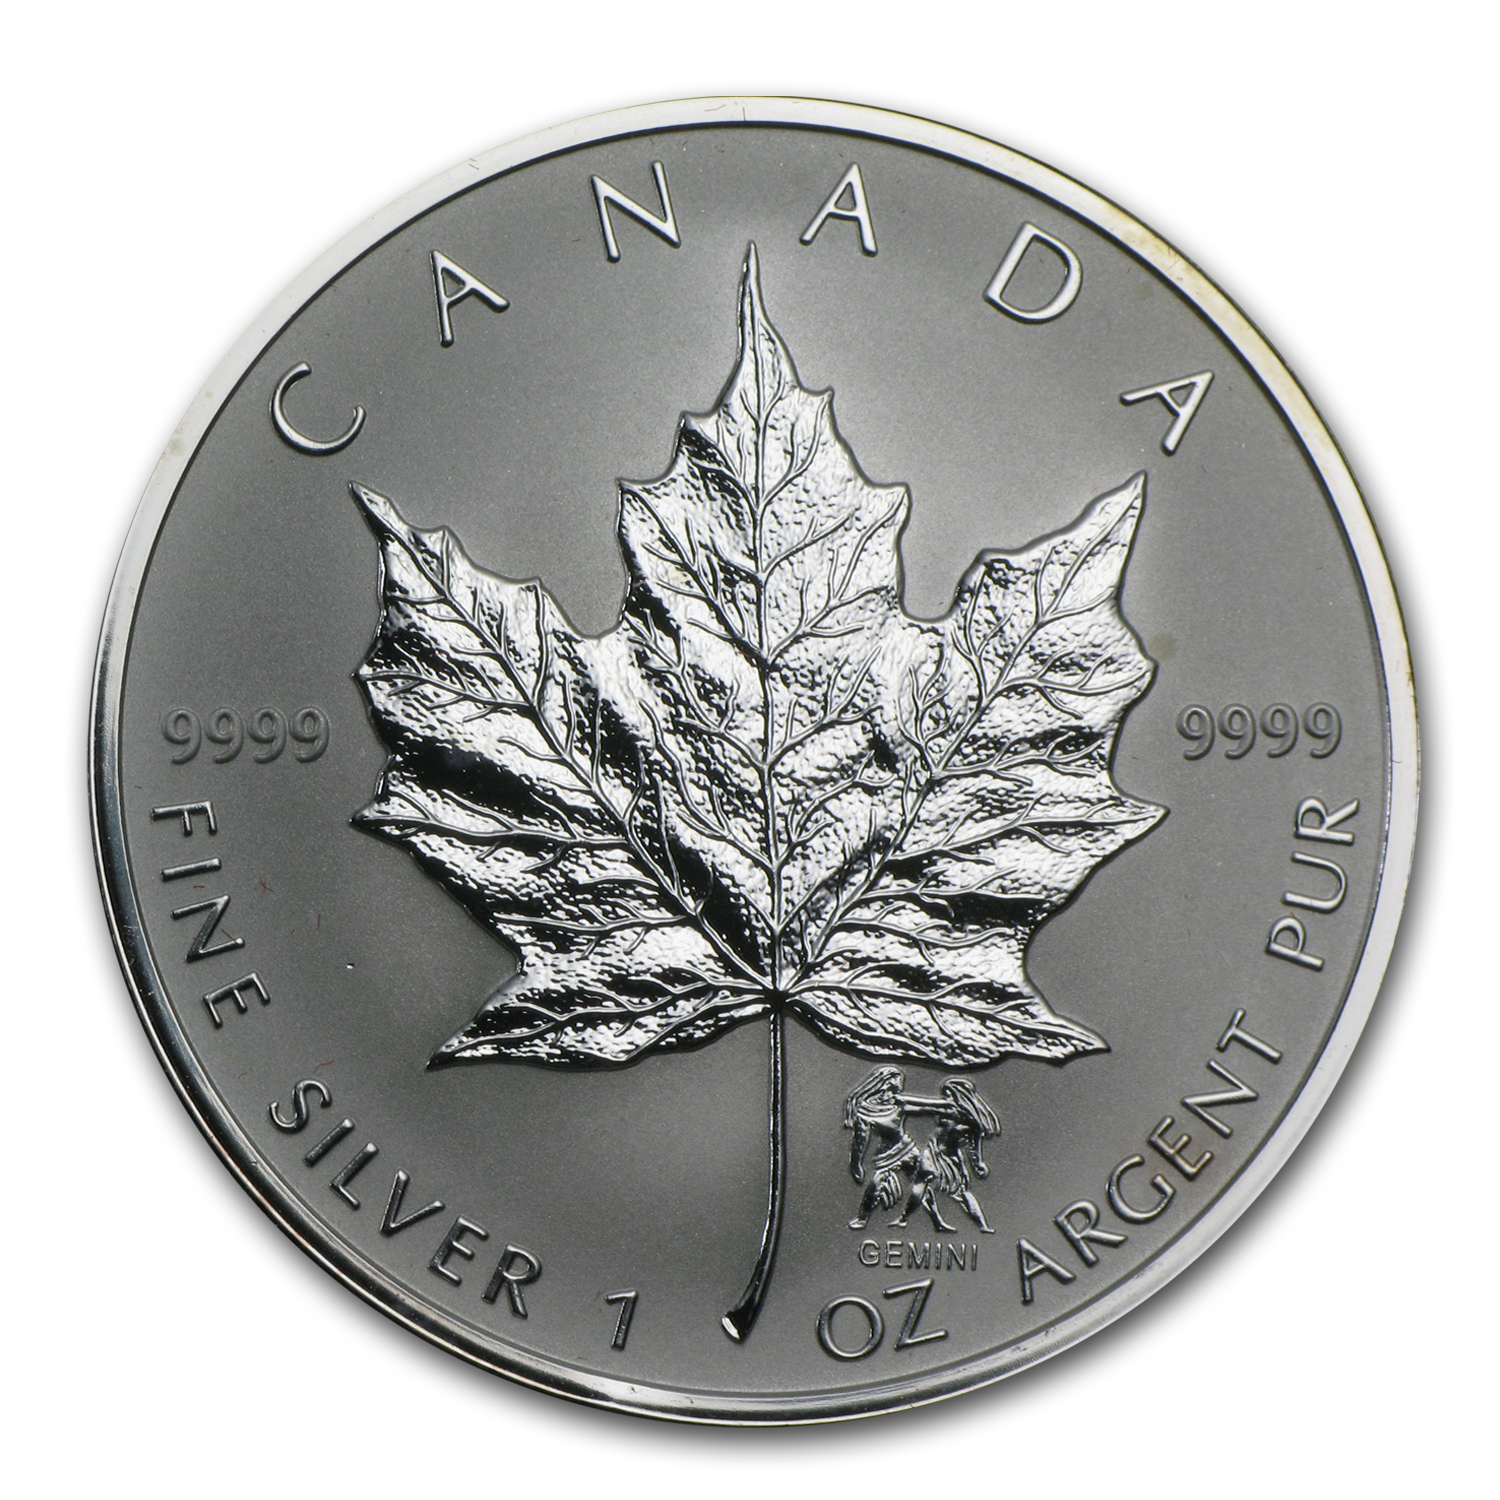 2004 Canada 1 oz Silver Maple Leaf Gemini Zodiac Privy